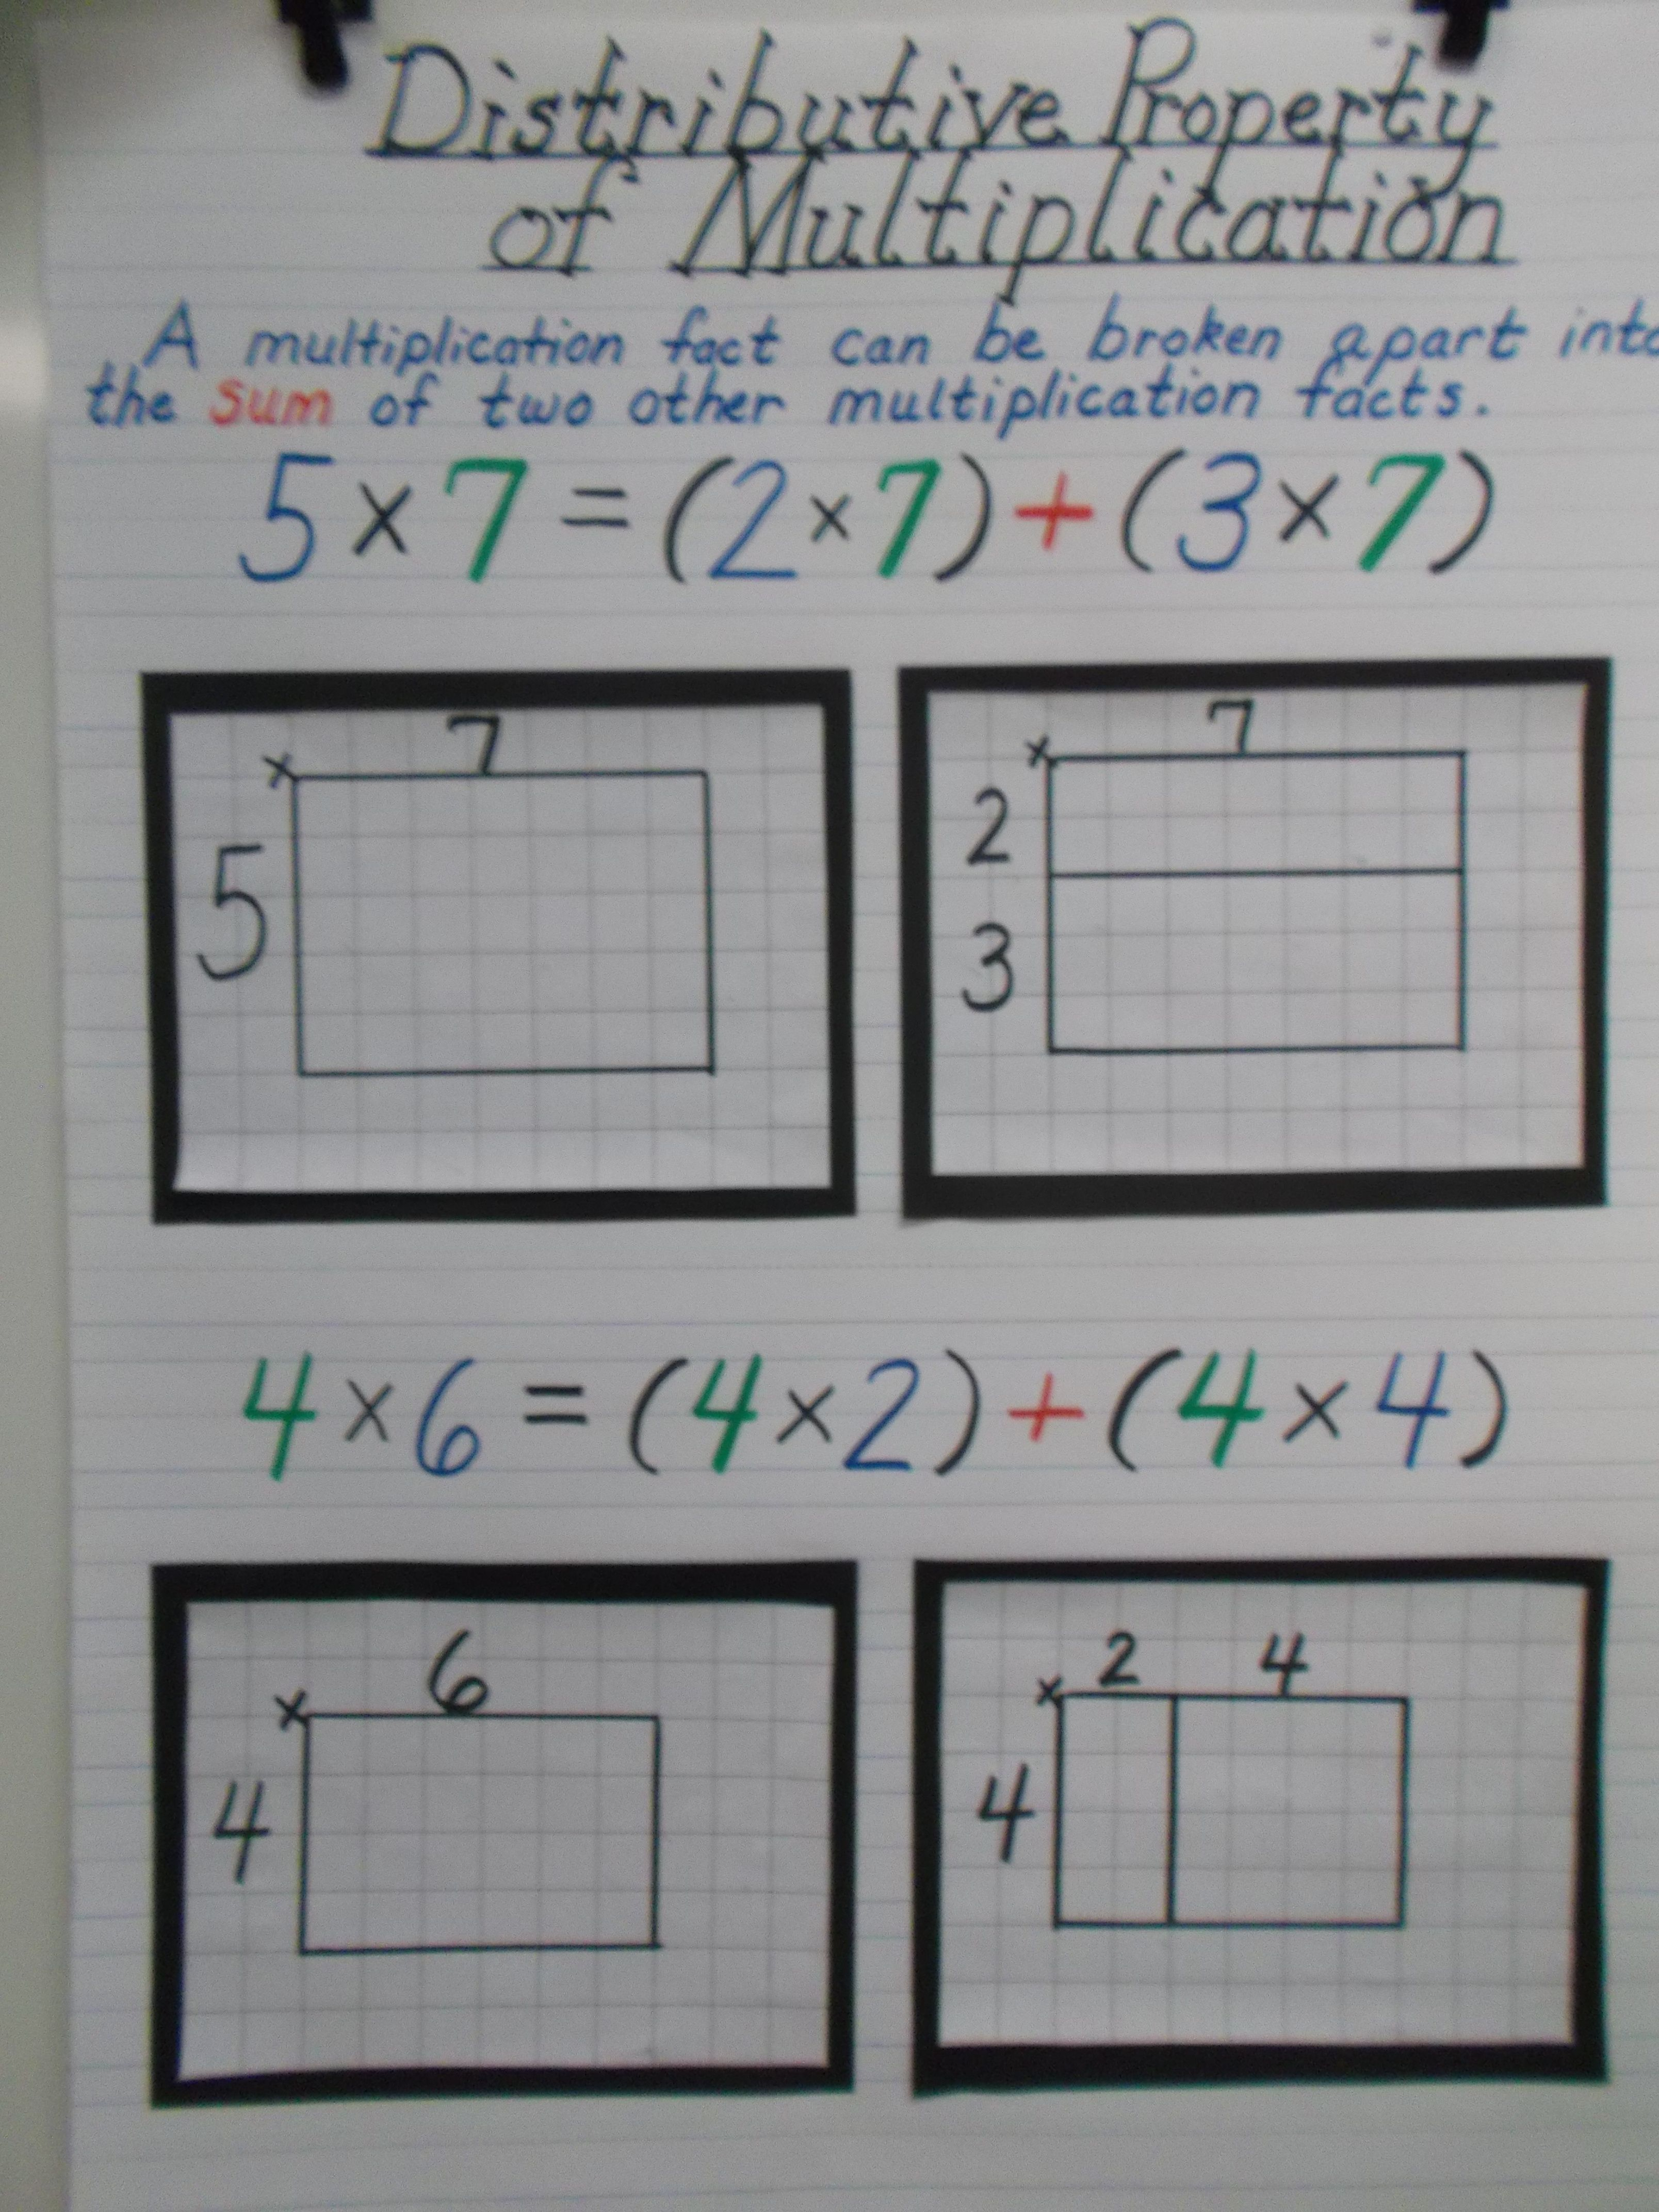 Distributive Property Of Multiplication Anchor Chart 3rd